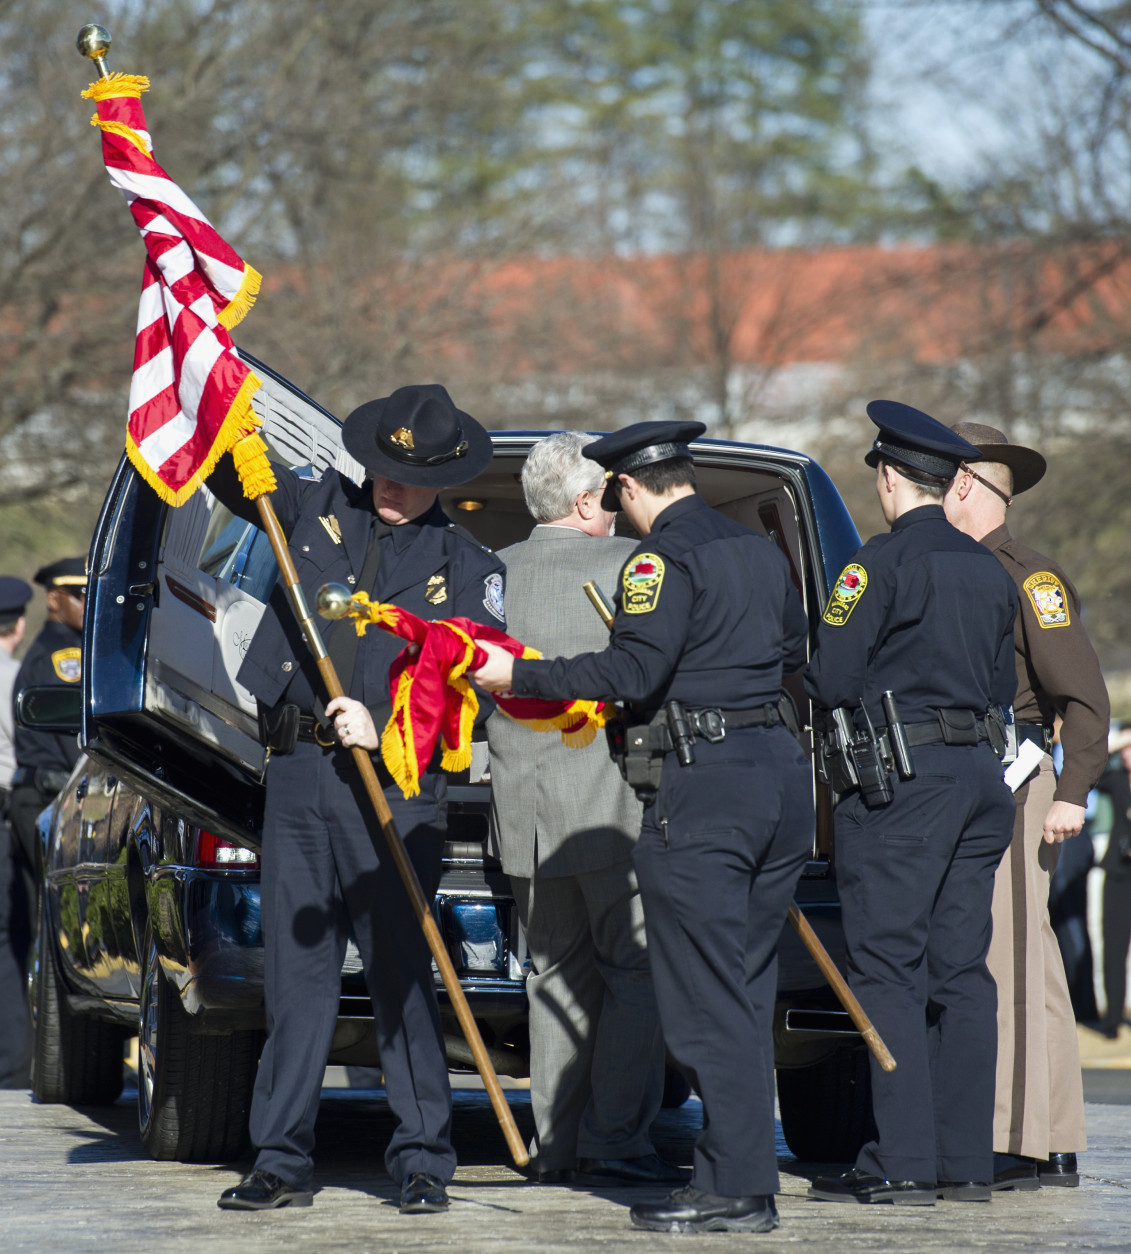 Funeral services held for Ashley Guindon, officer killed in line of